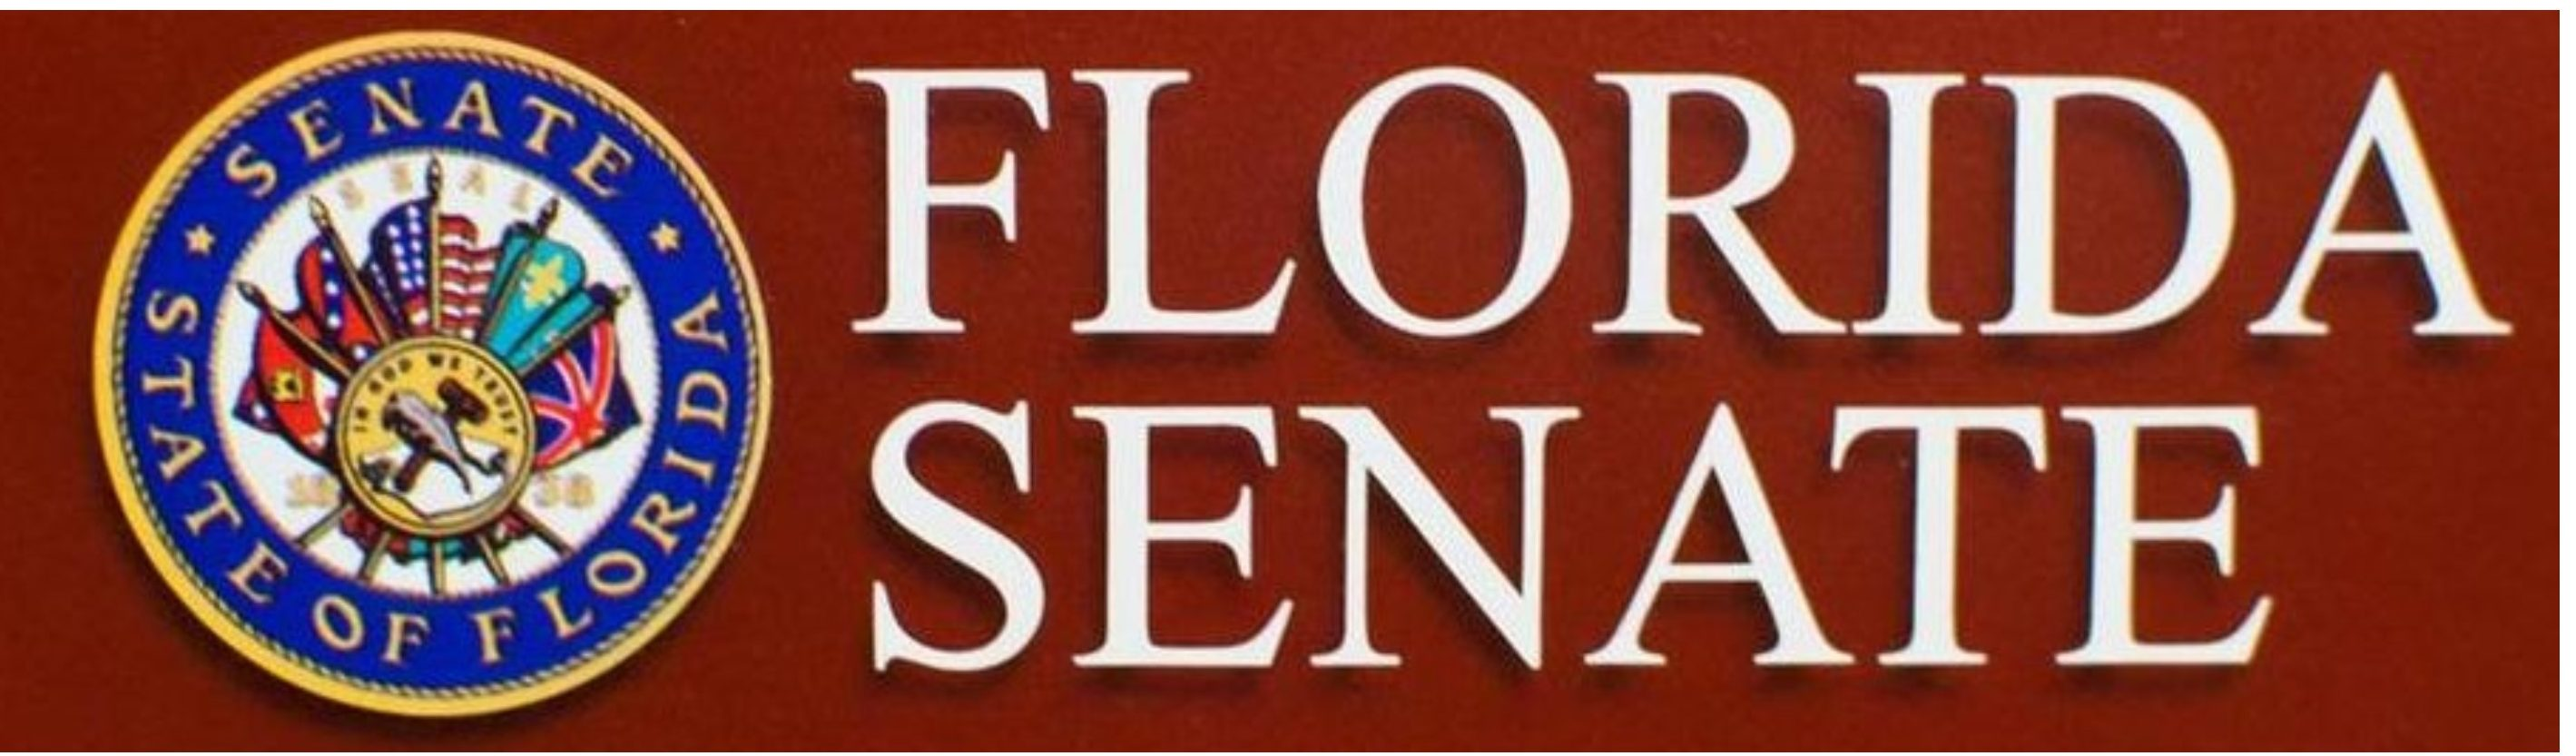 website senate image